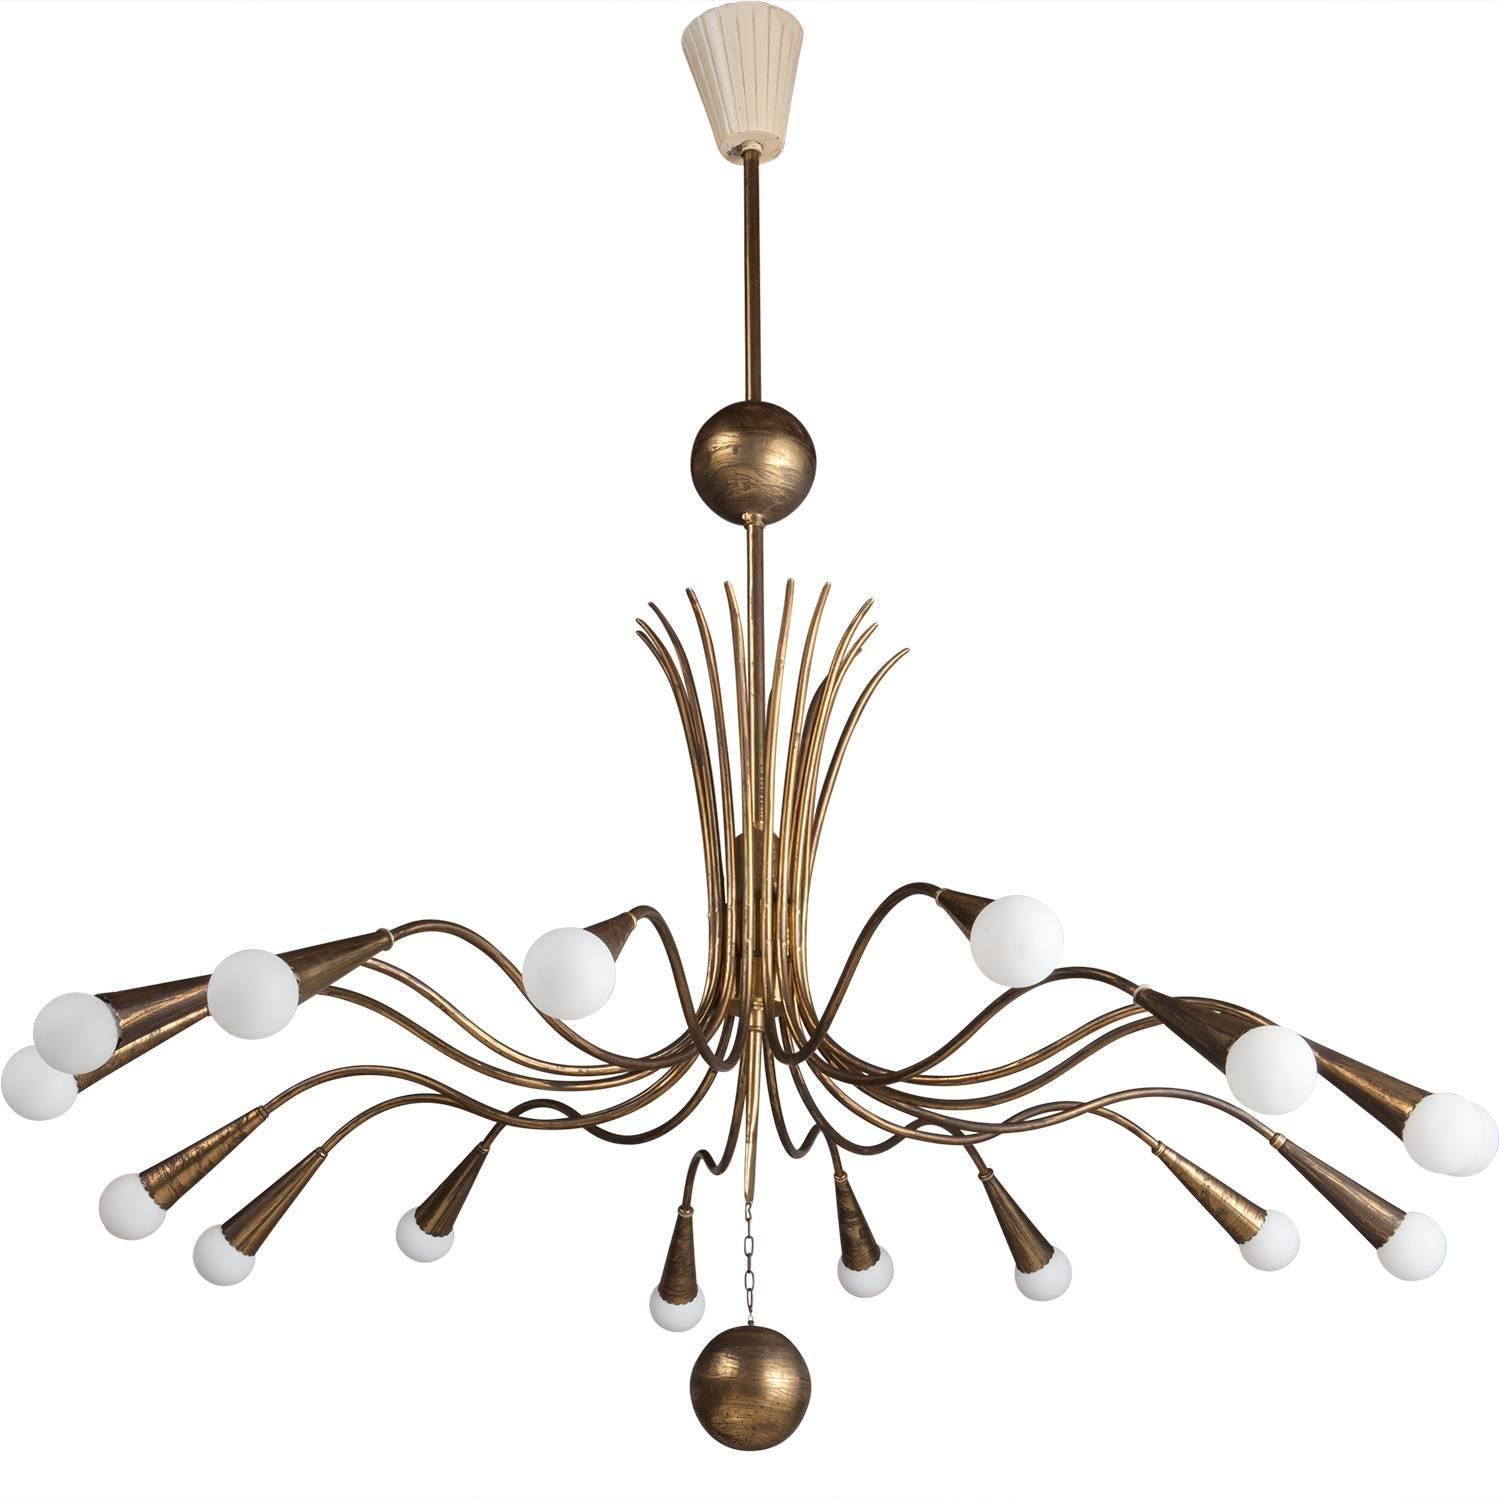 Brass modern chandelier at 1stdibs for How to make a modern chandelier